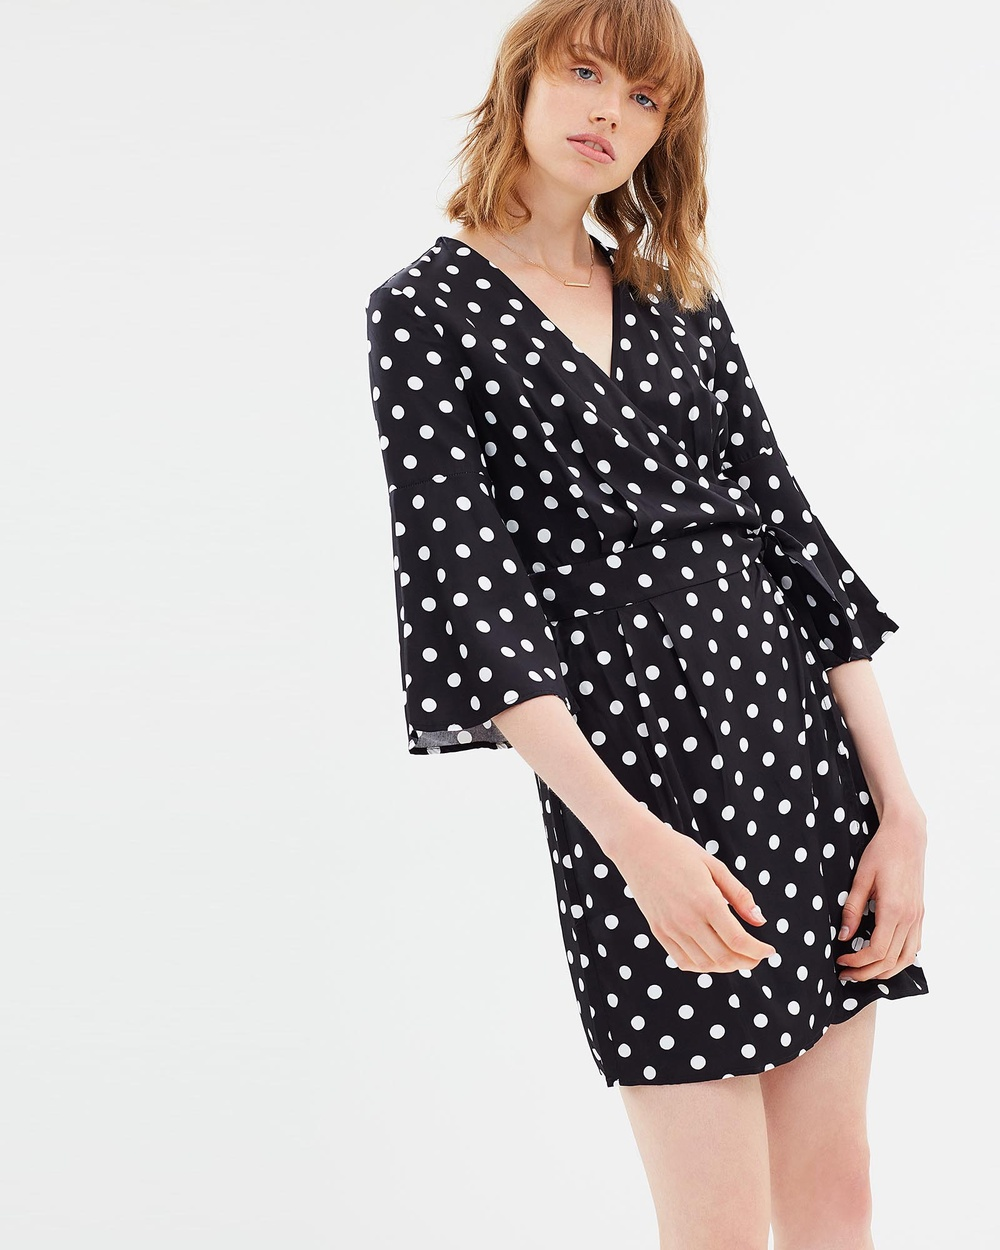 Third Form Spotted Wrap Dress Printed Dresses Black Spot Spotted Wrap Dress